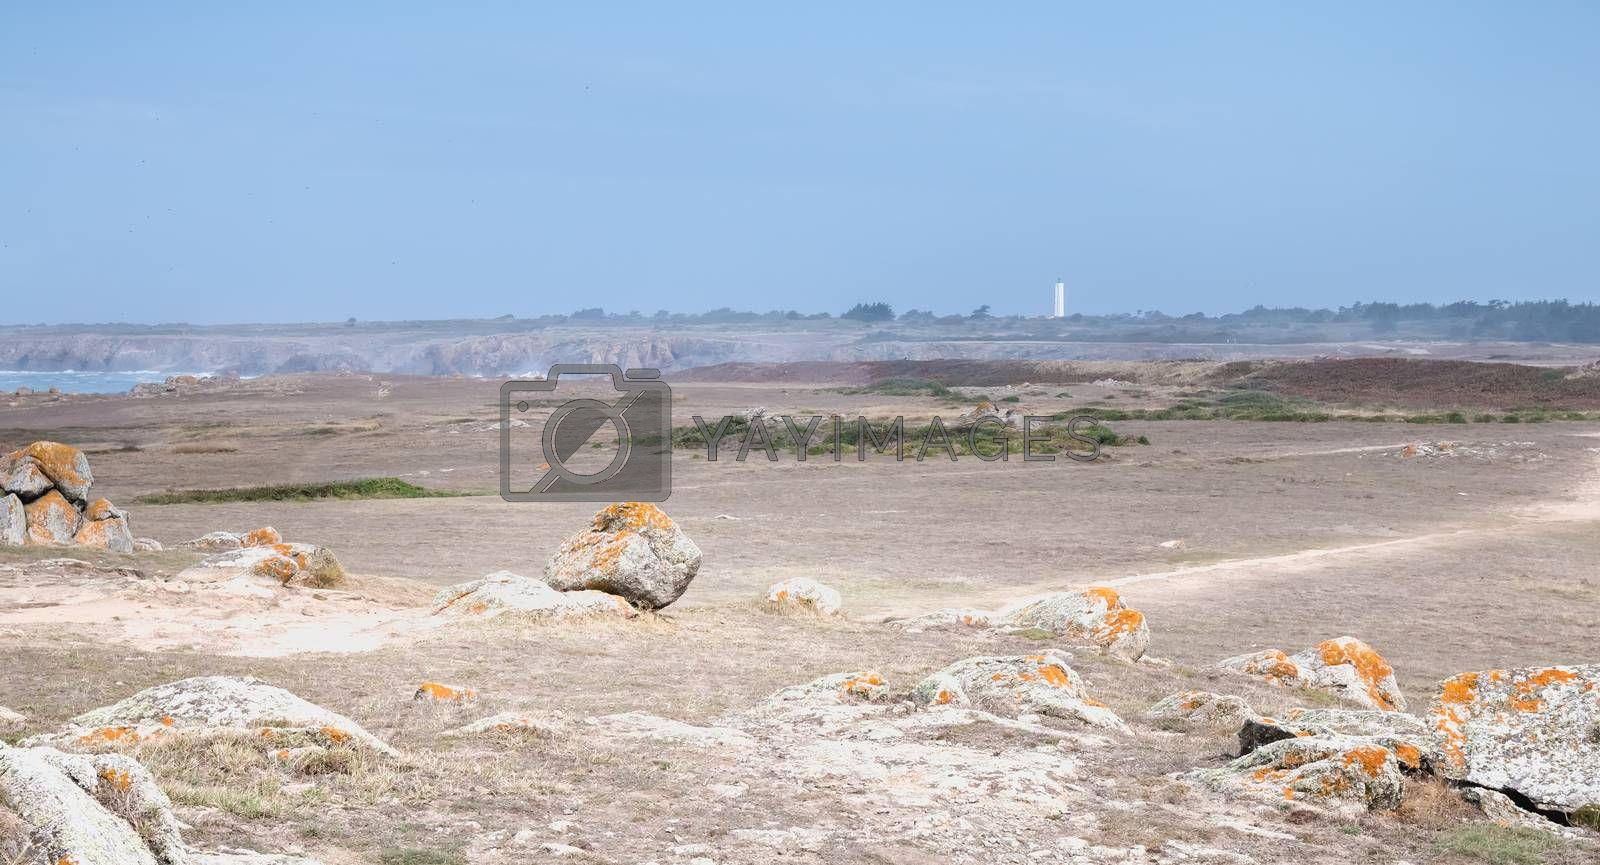 view of the rocky dune of Ile d'Yeu next to the sea with its small beach house, France